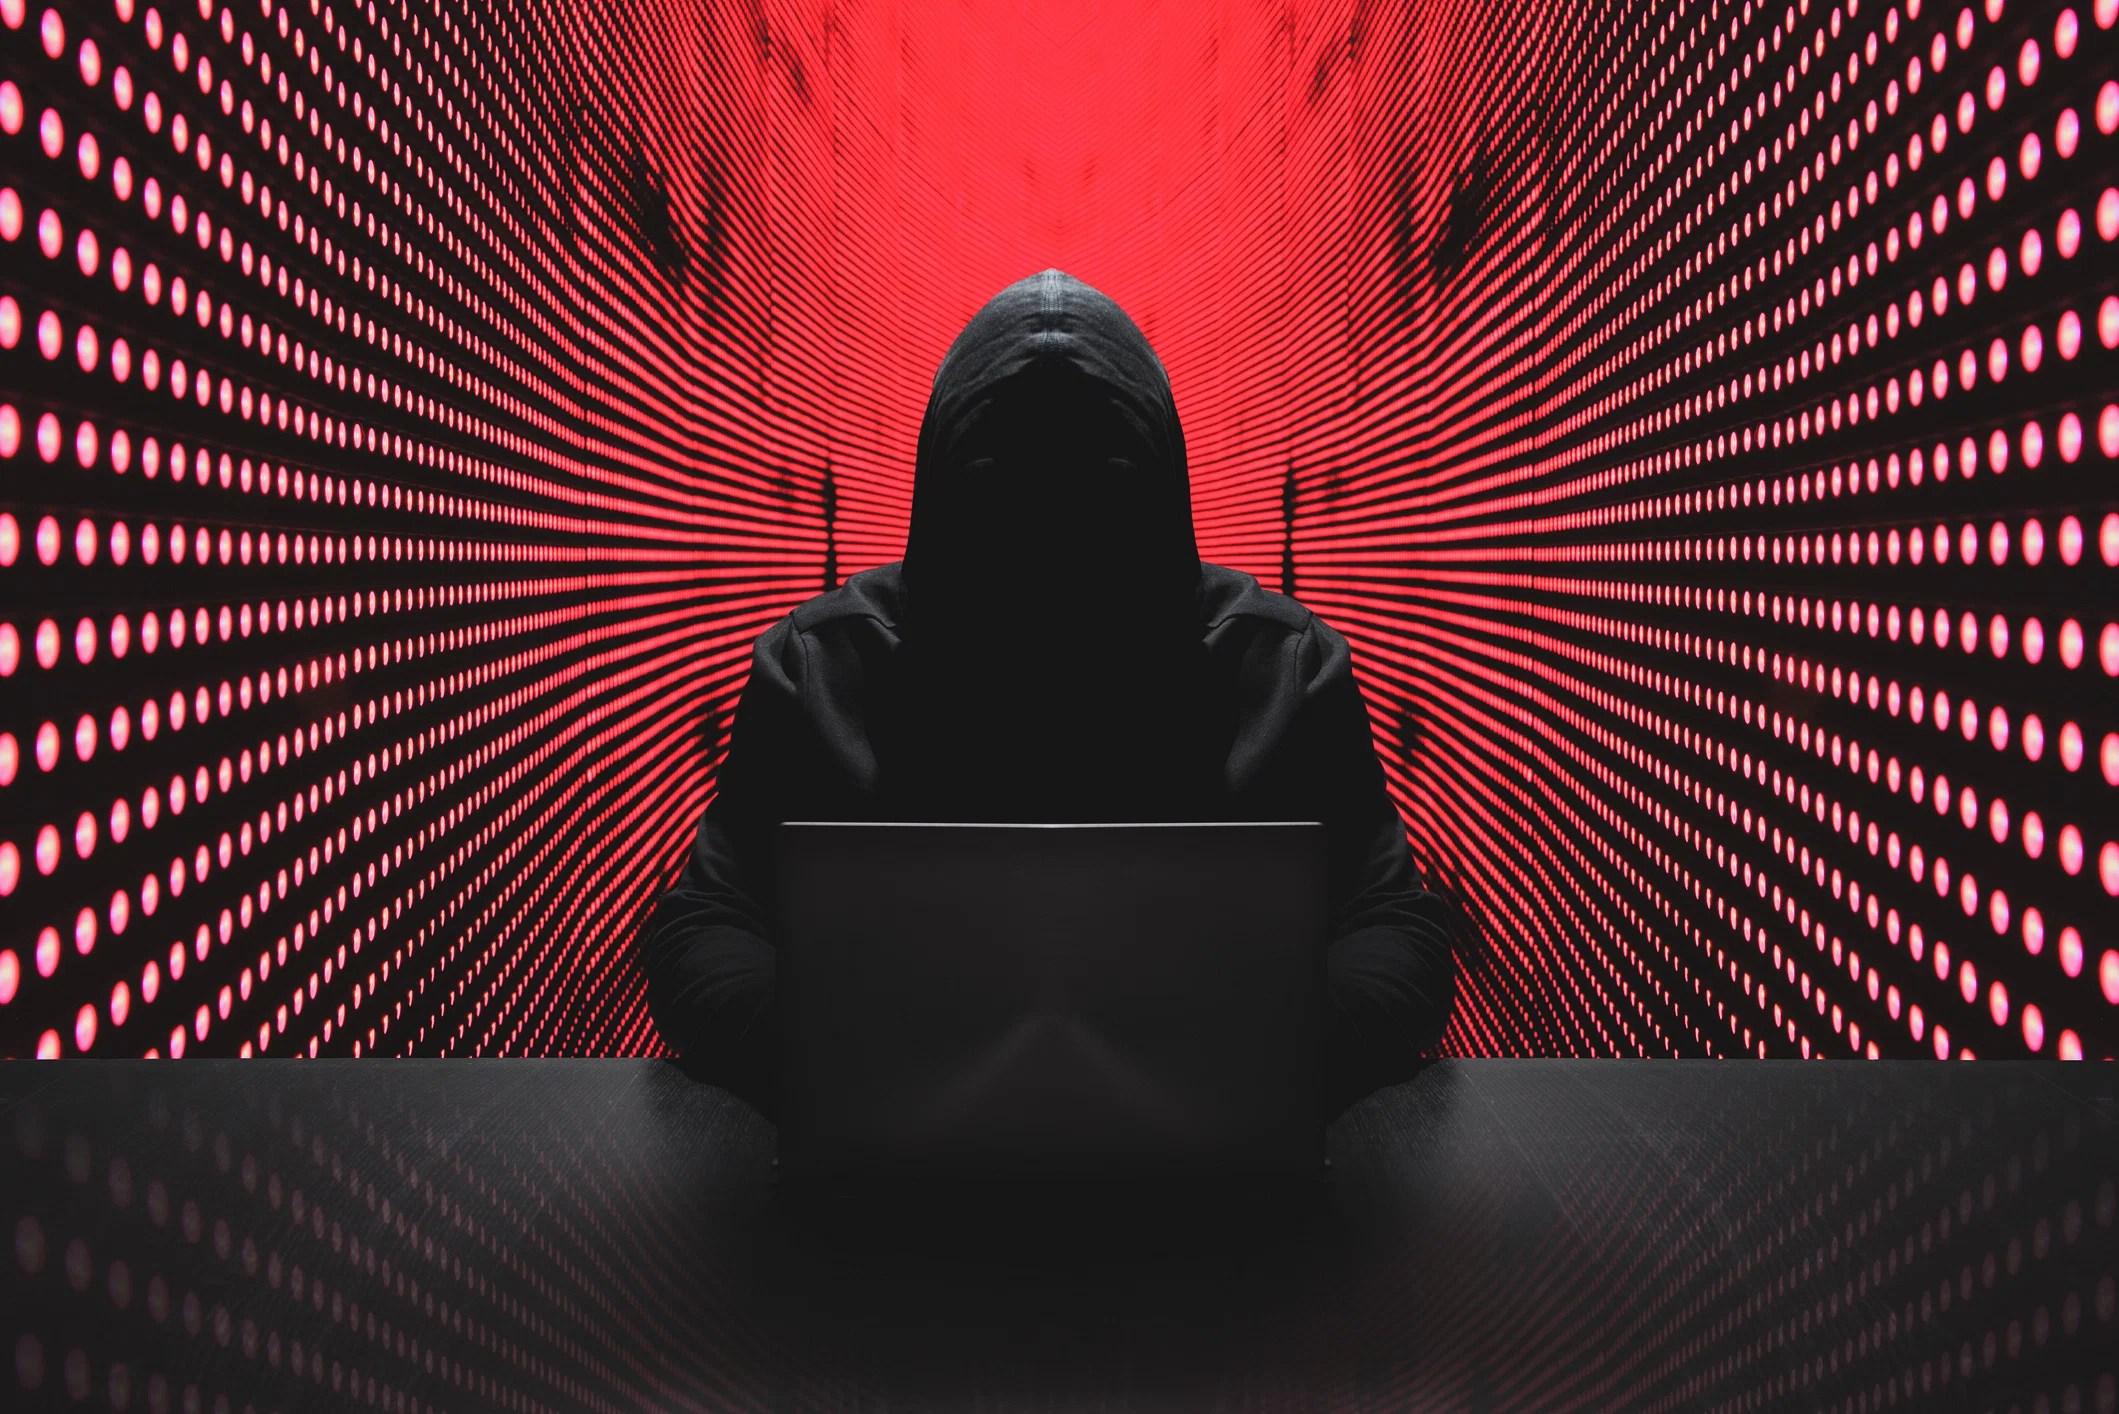 In 2019, cyber crimes in India grew by a massive 63.5 percent, according to the National Crime Record Bureau.